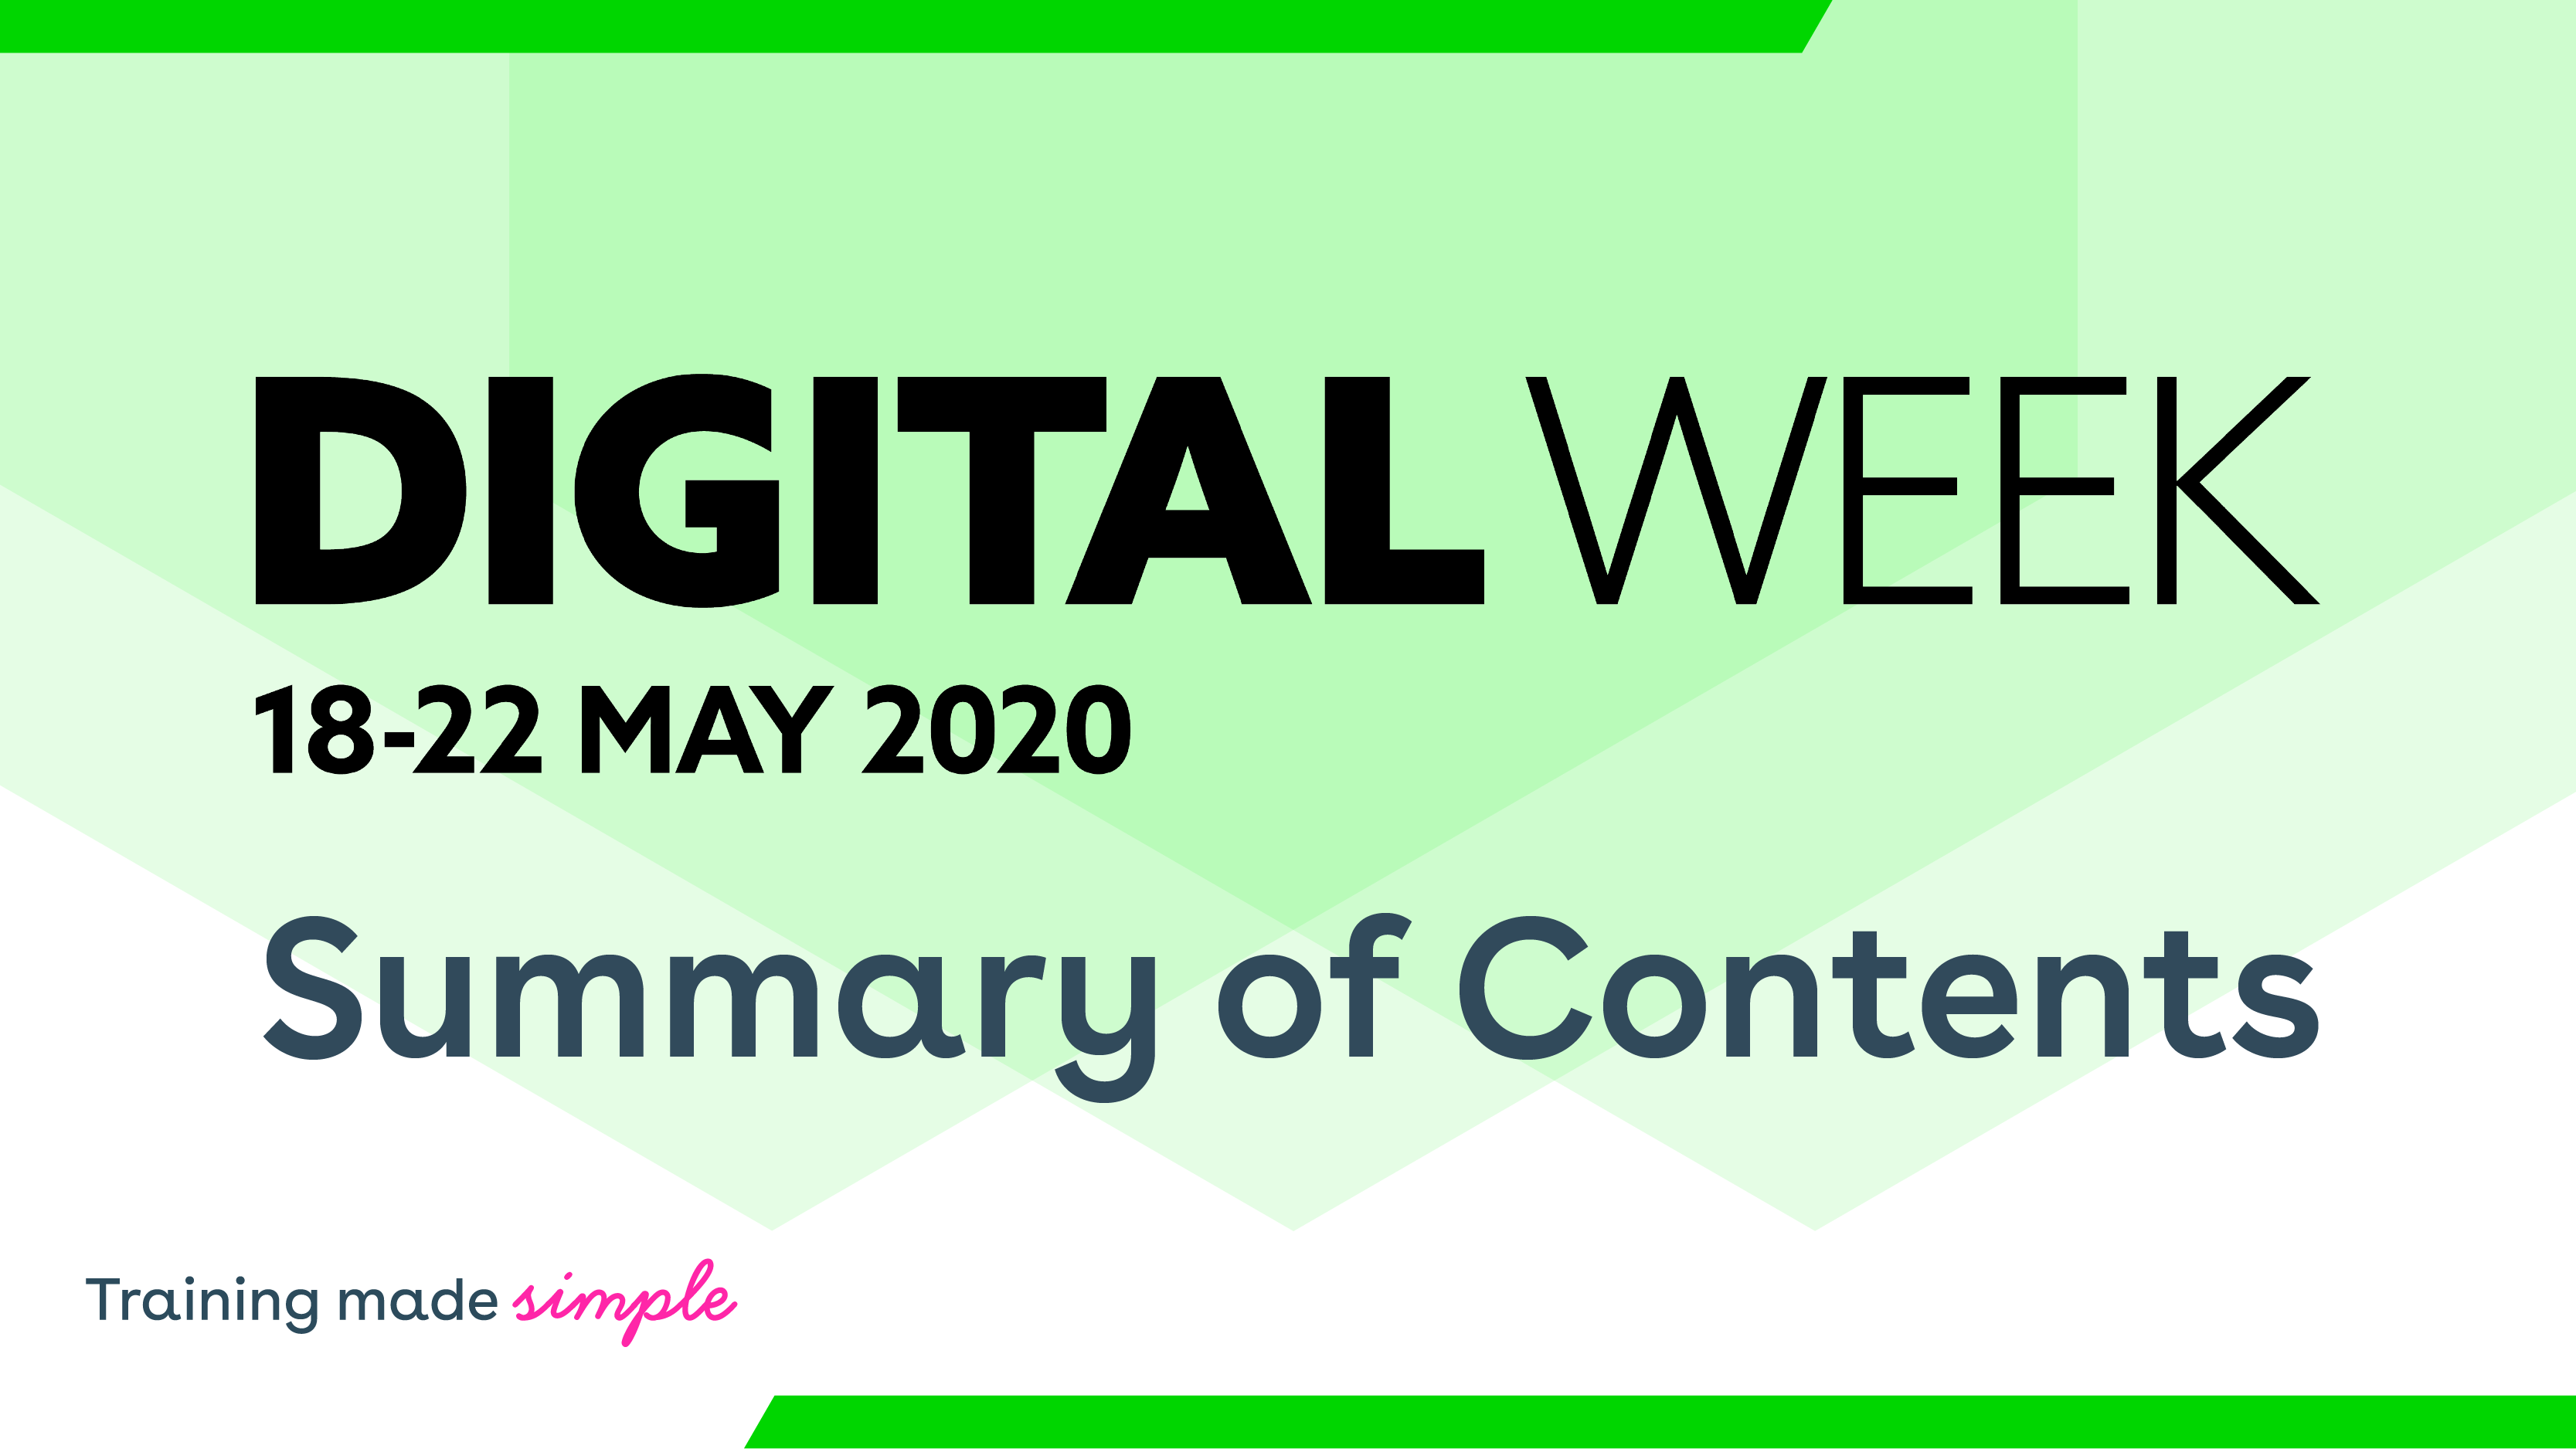 Digital Week 2020 - Summary of Contents